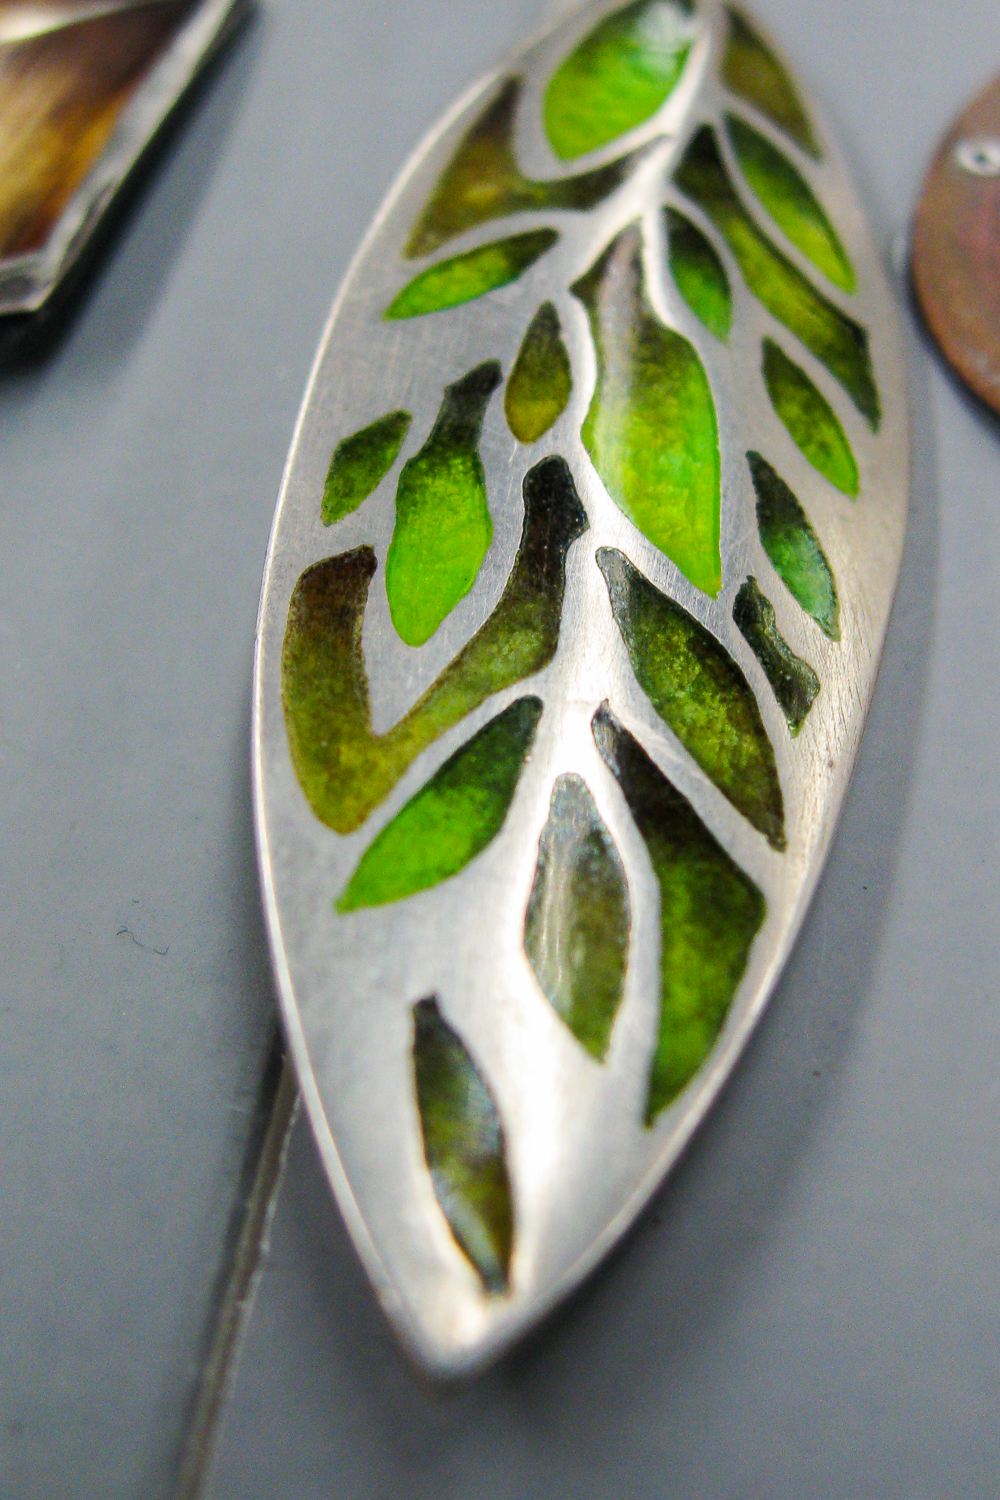 Basse taille sample from Linda Darty Enamel Workshop